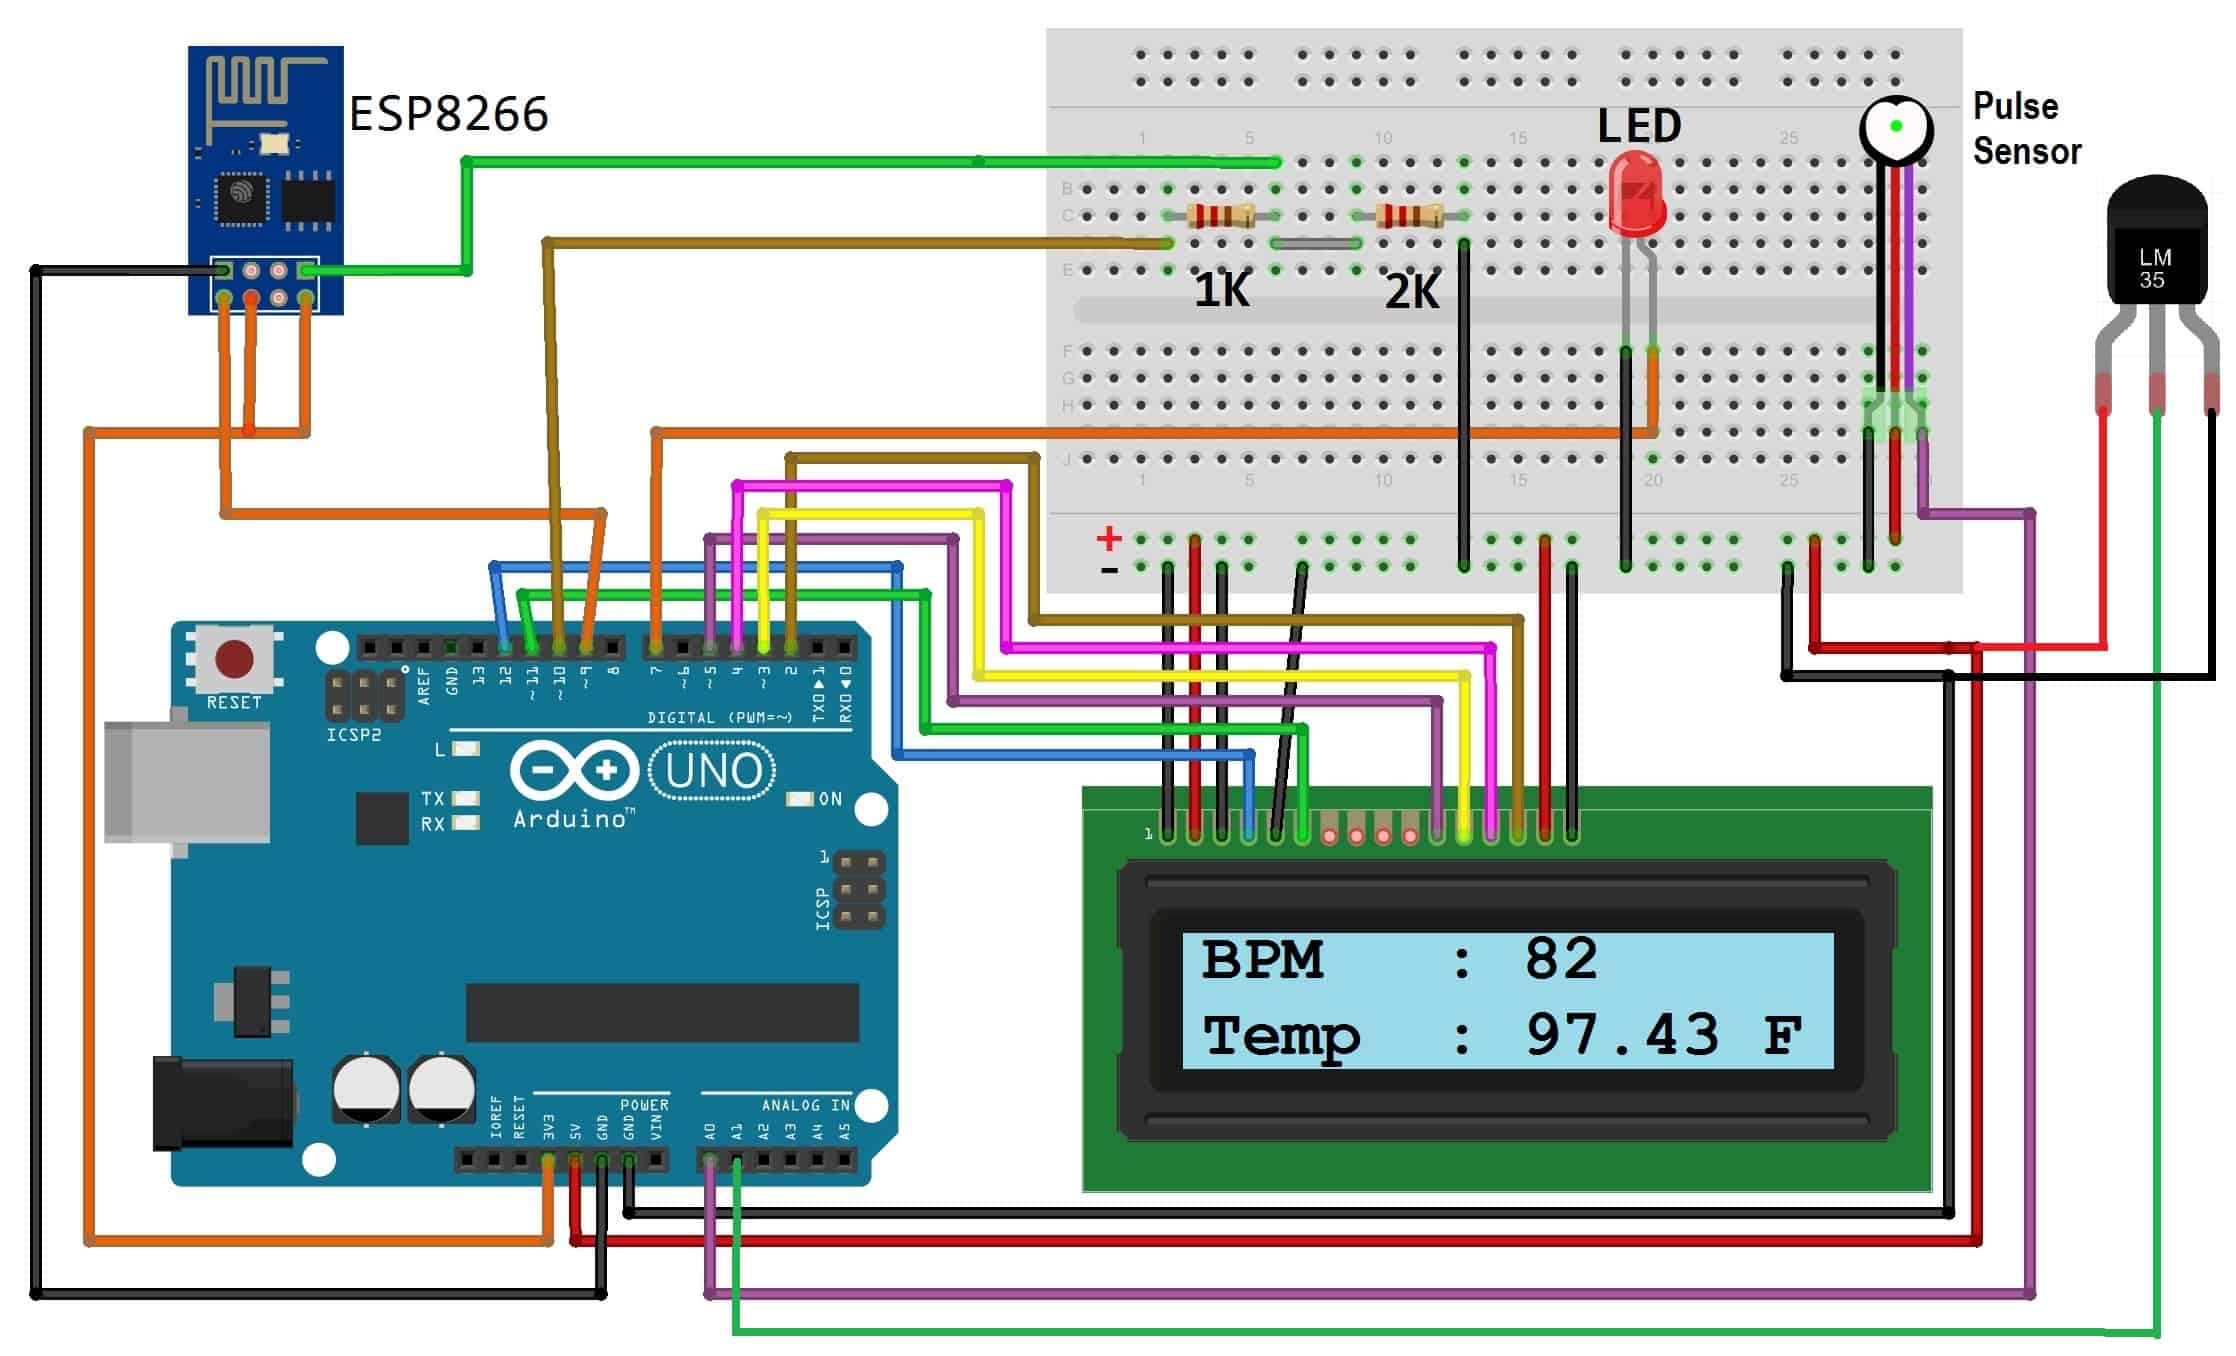 small resolution of for designing iot based patient health monitoring system using esp8266 arduino assemble the circuit as shown in the figure below